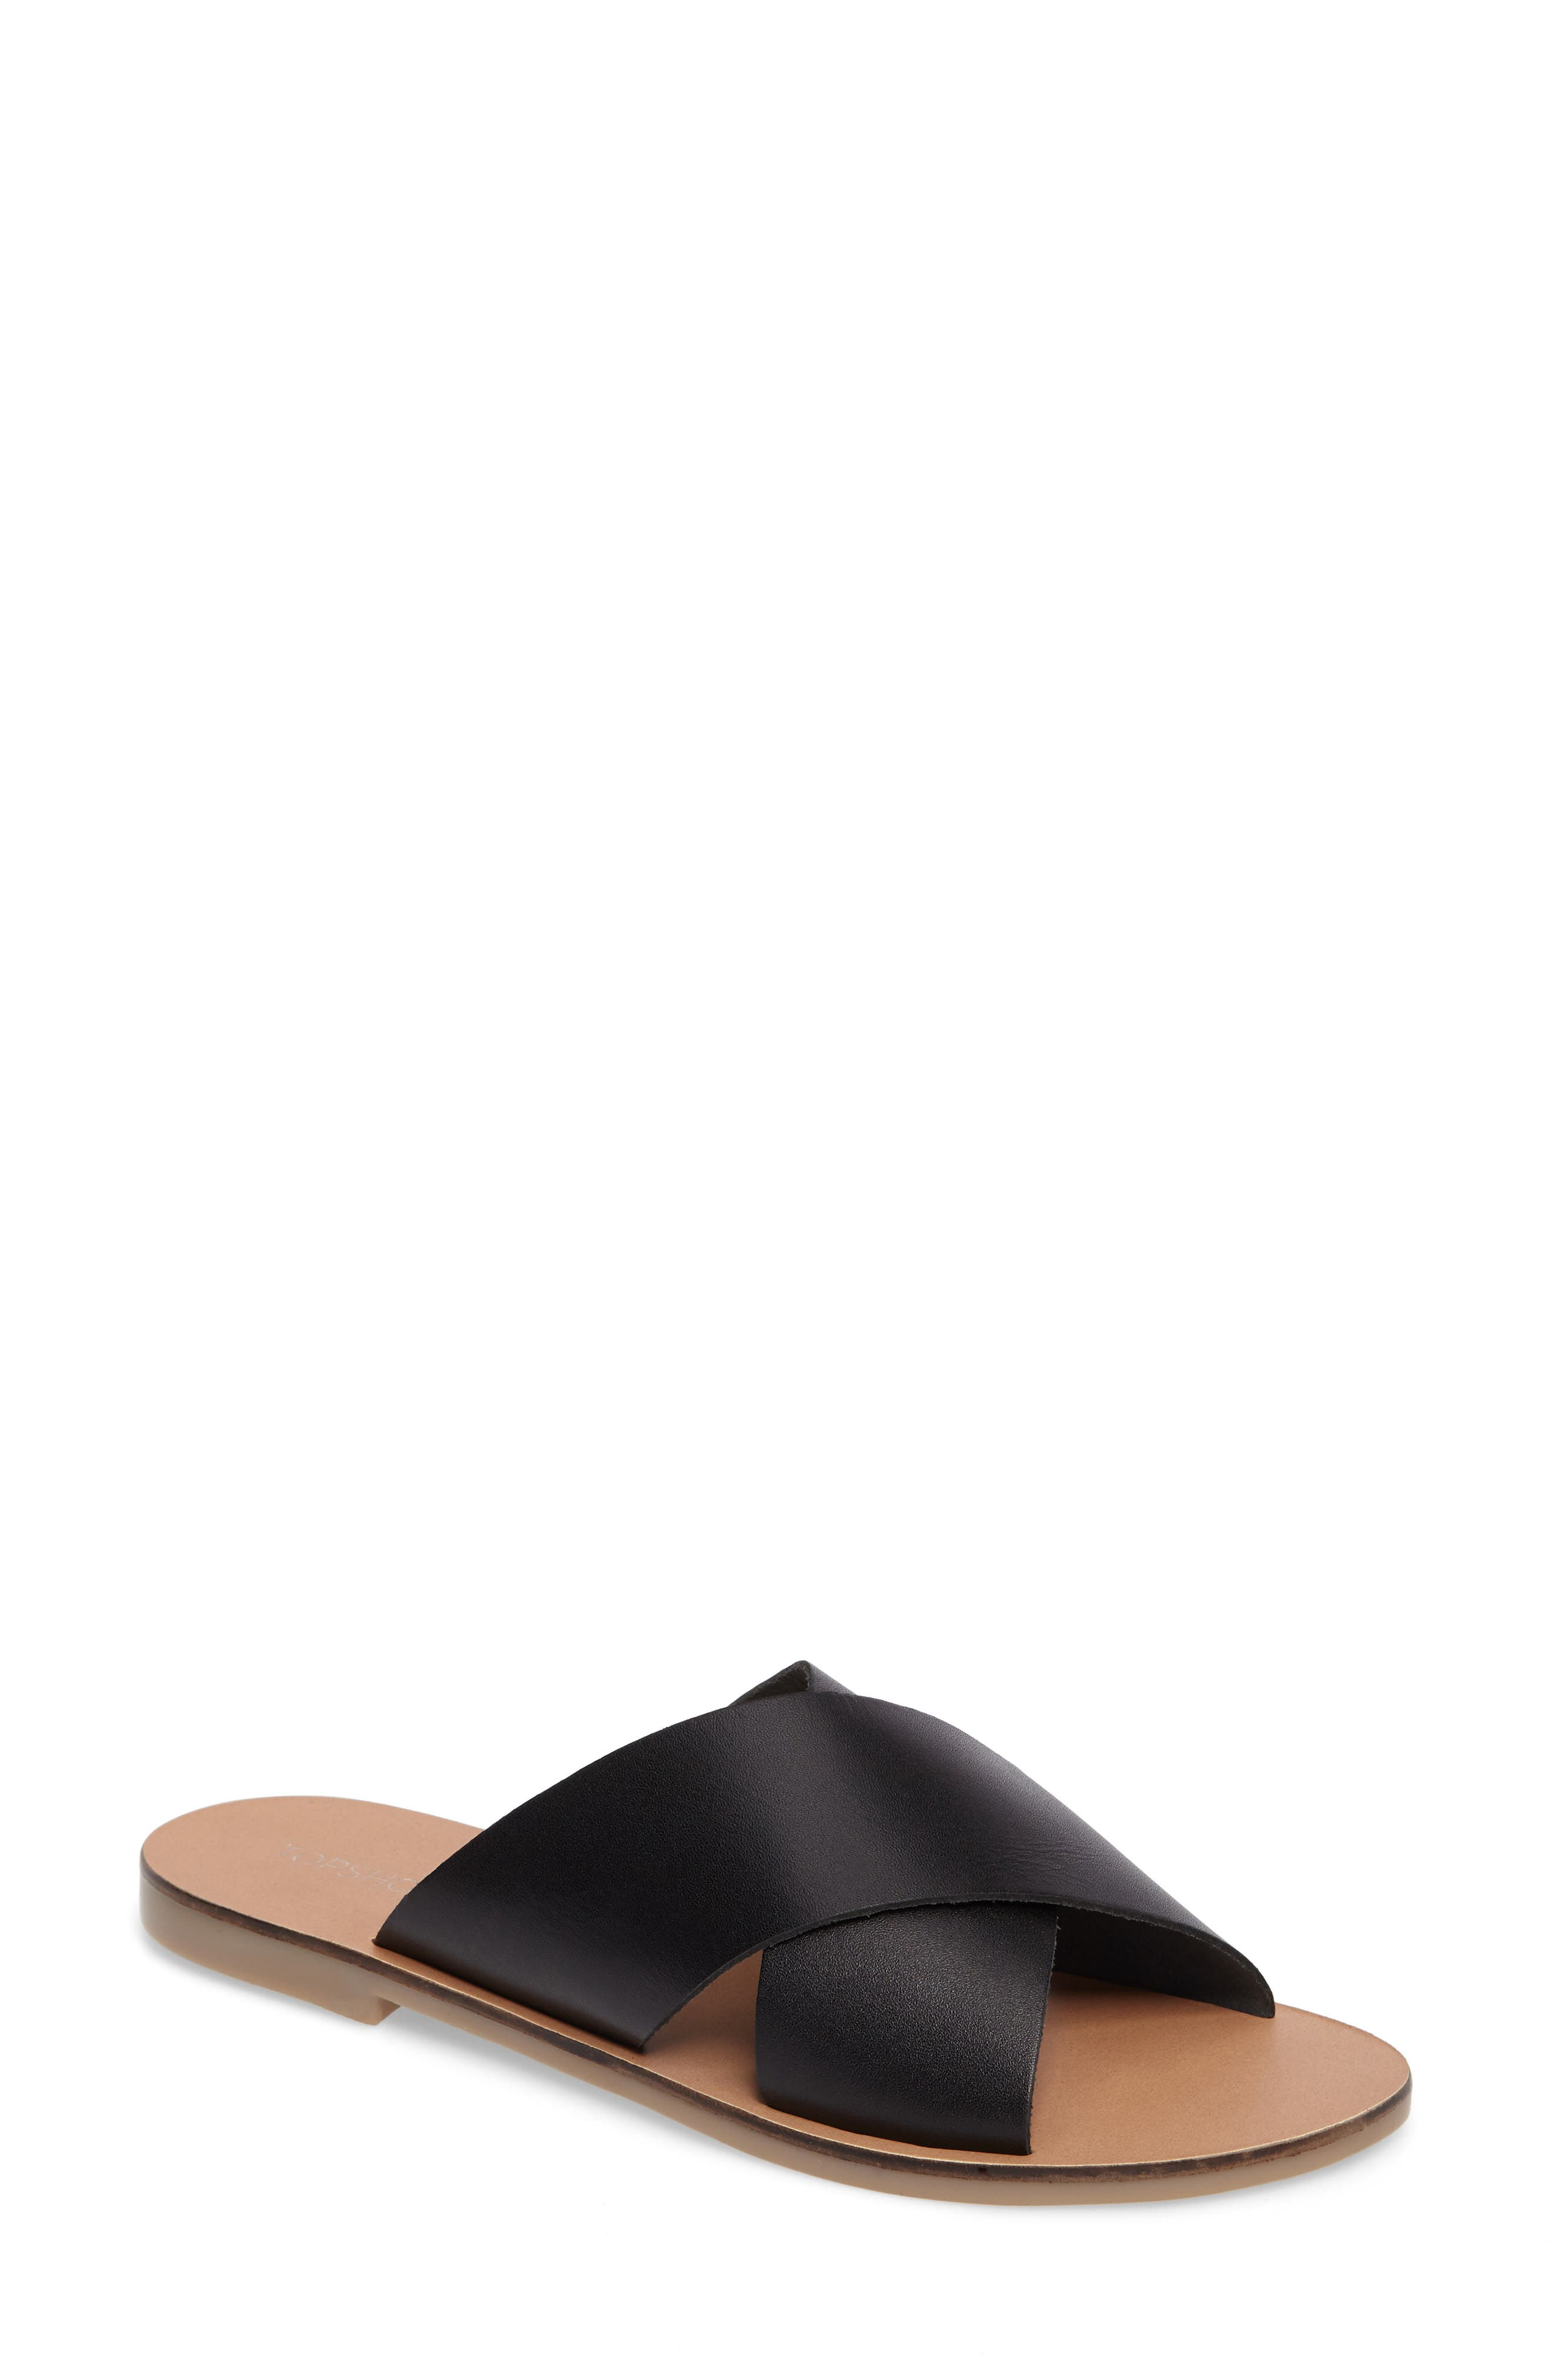 Alternate Image 1 Selected - Topshop Holiday Cross Strap Sandal (Women)